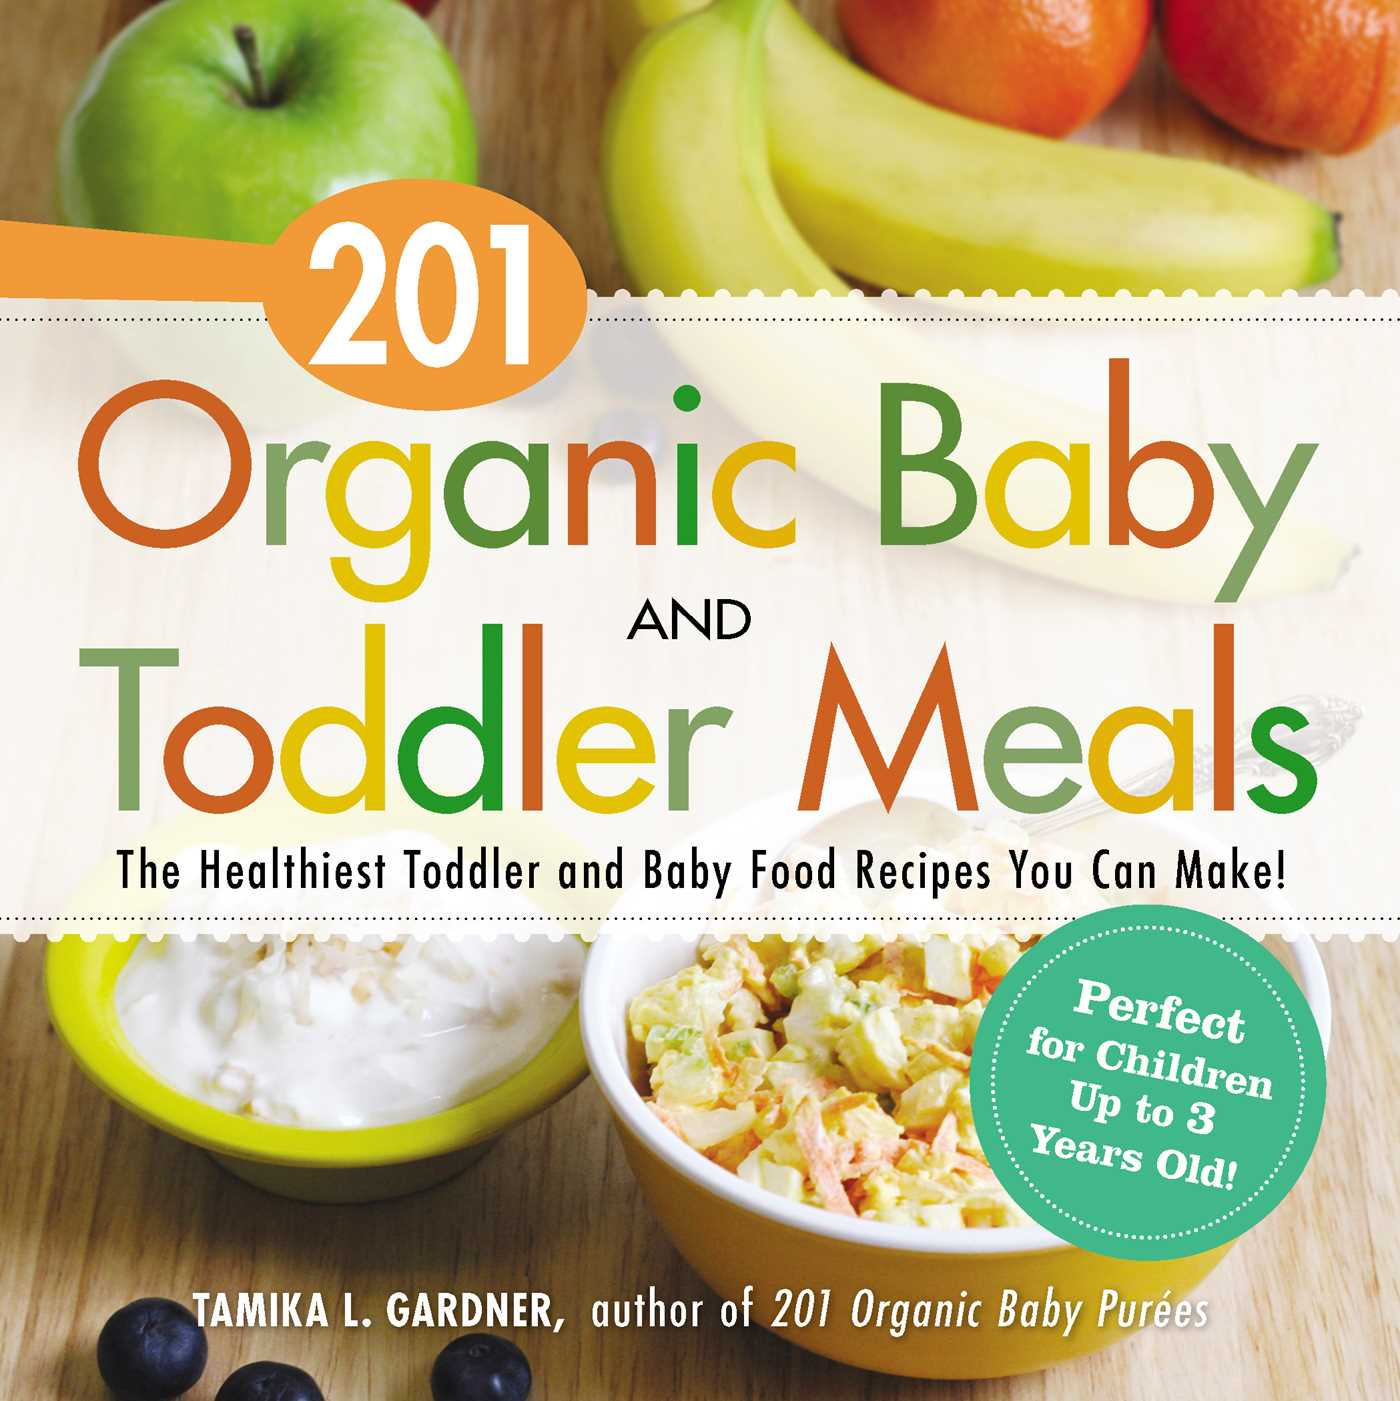 201 organic baby and toddler meals book by tamika l gardner book cover image jpg 201 organic baby and toddler meals forumfinder Choice Image